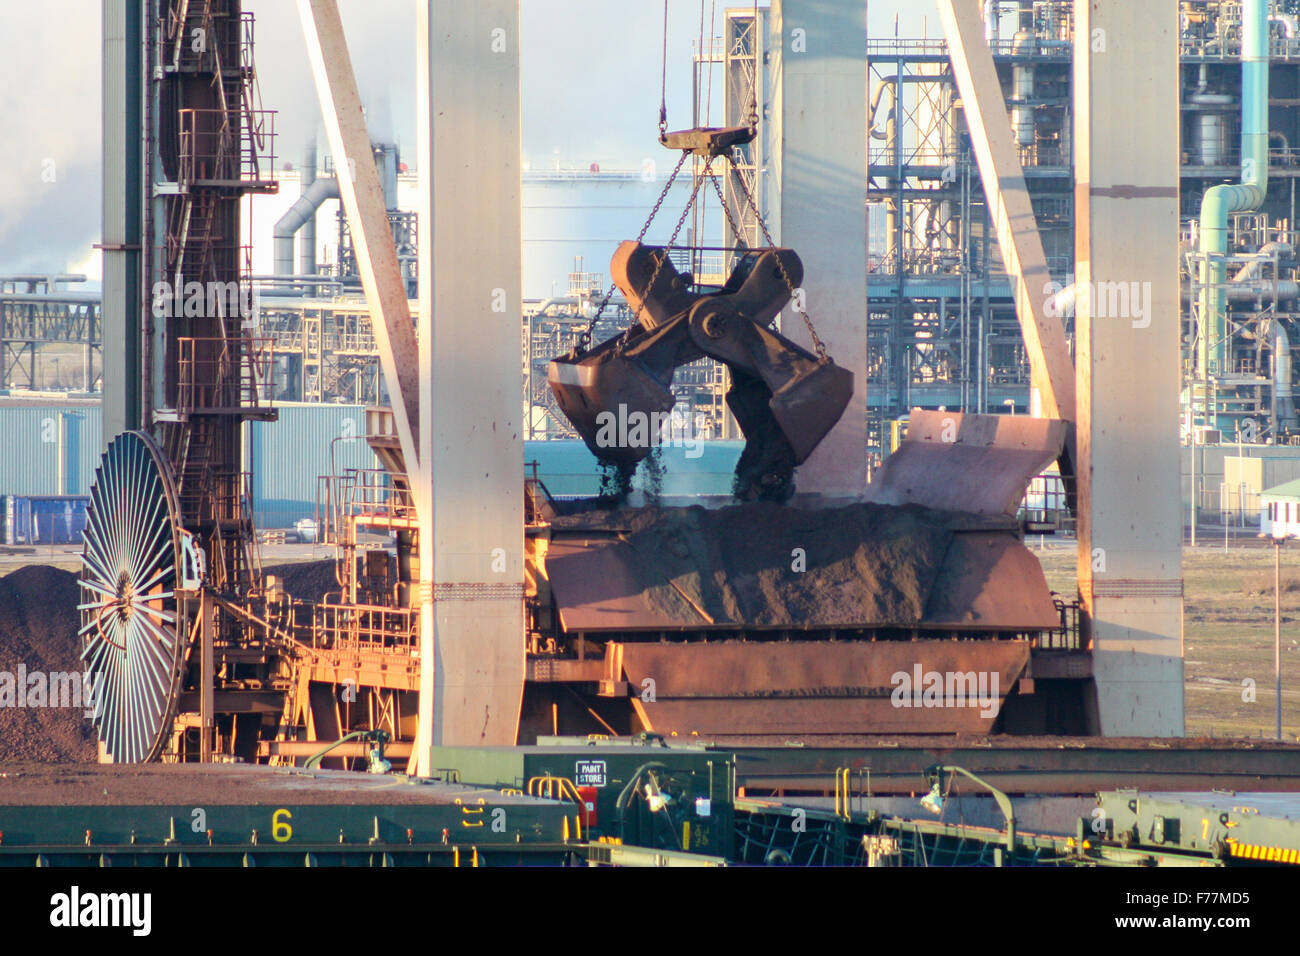 North Sea, on board ship arriving in Rotterdam harbour at sunrise with shipping, bulk cranes giant grab bucket - Stock Image